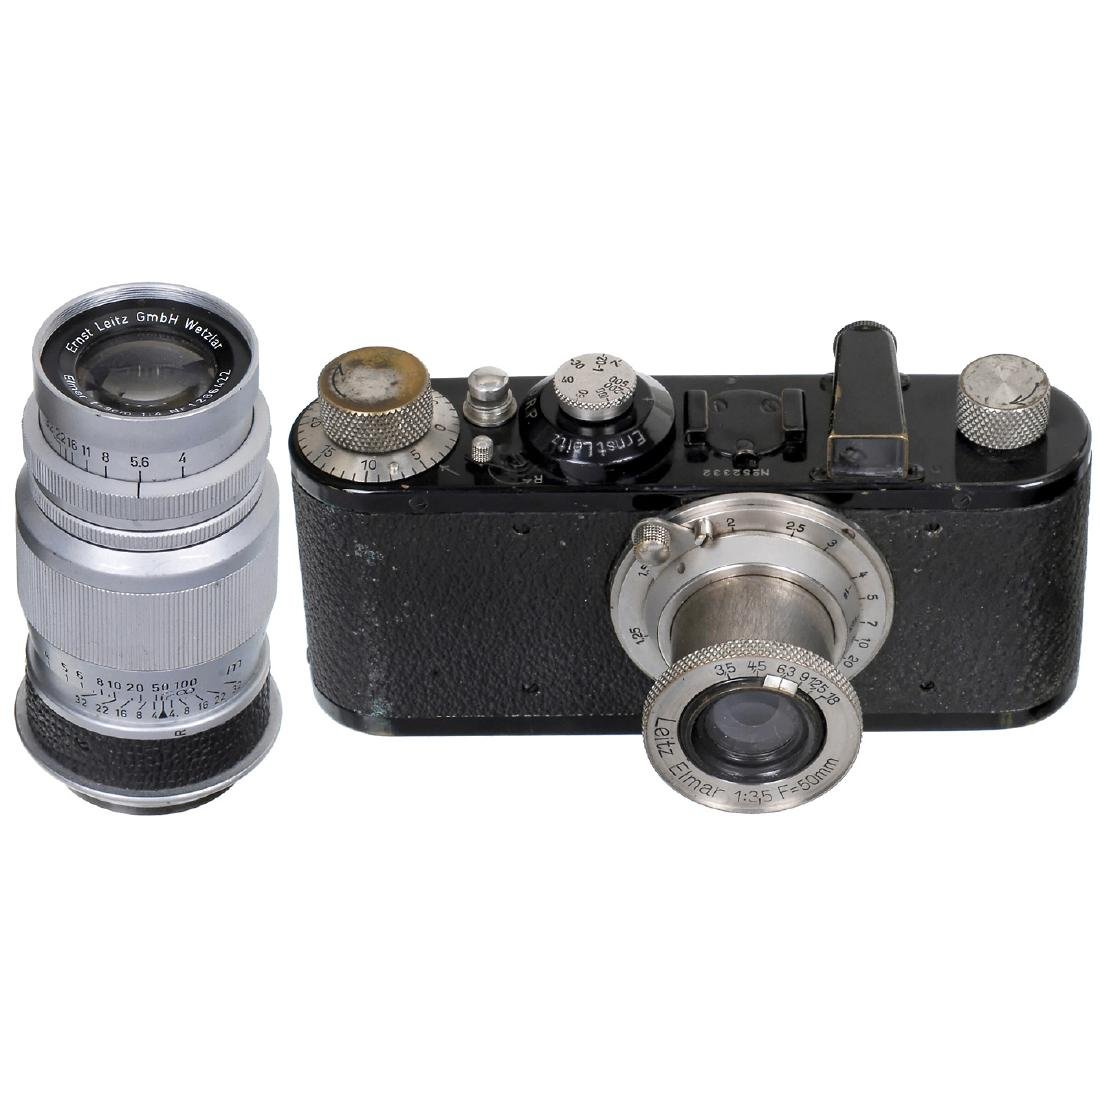 Leica I with Two Lenses, 1930